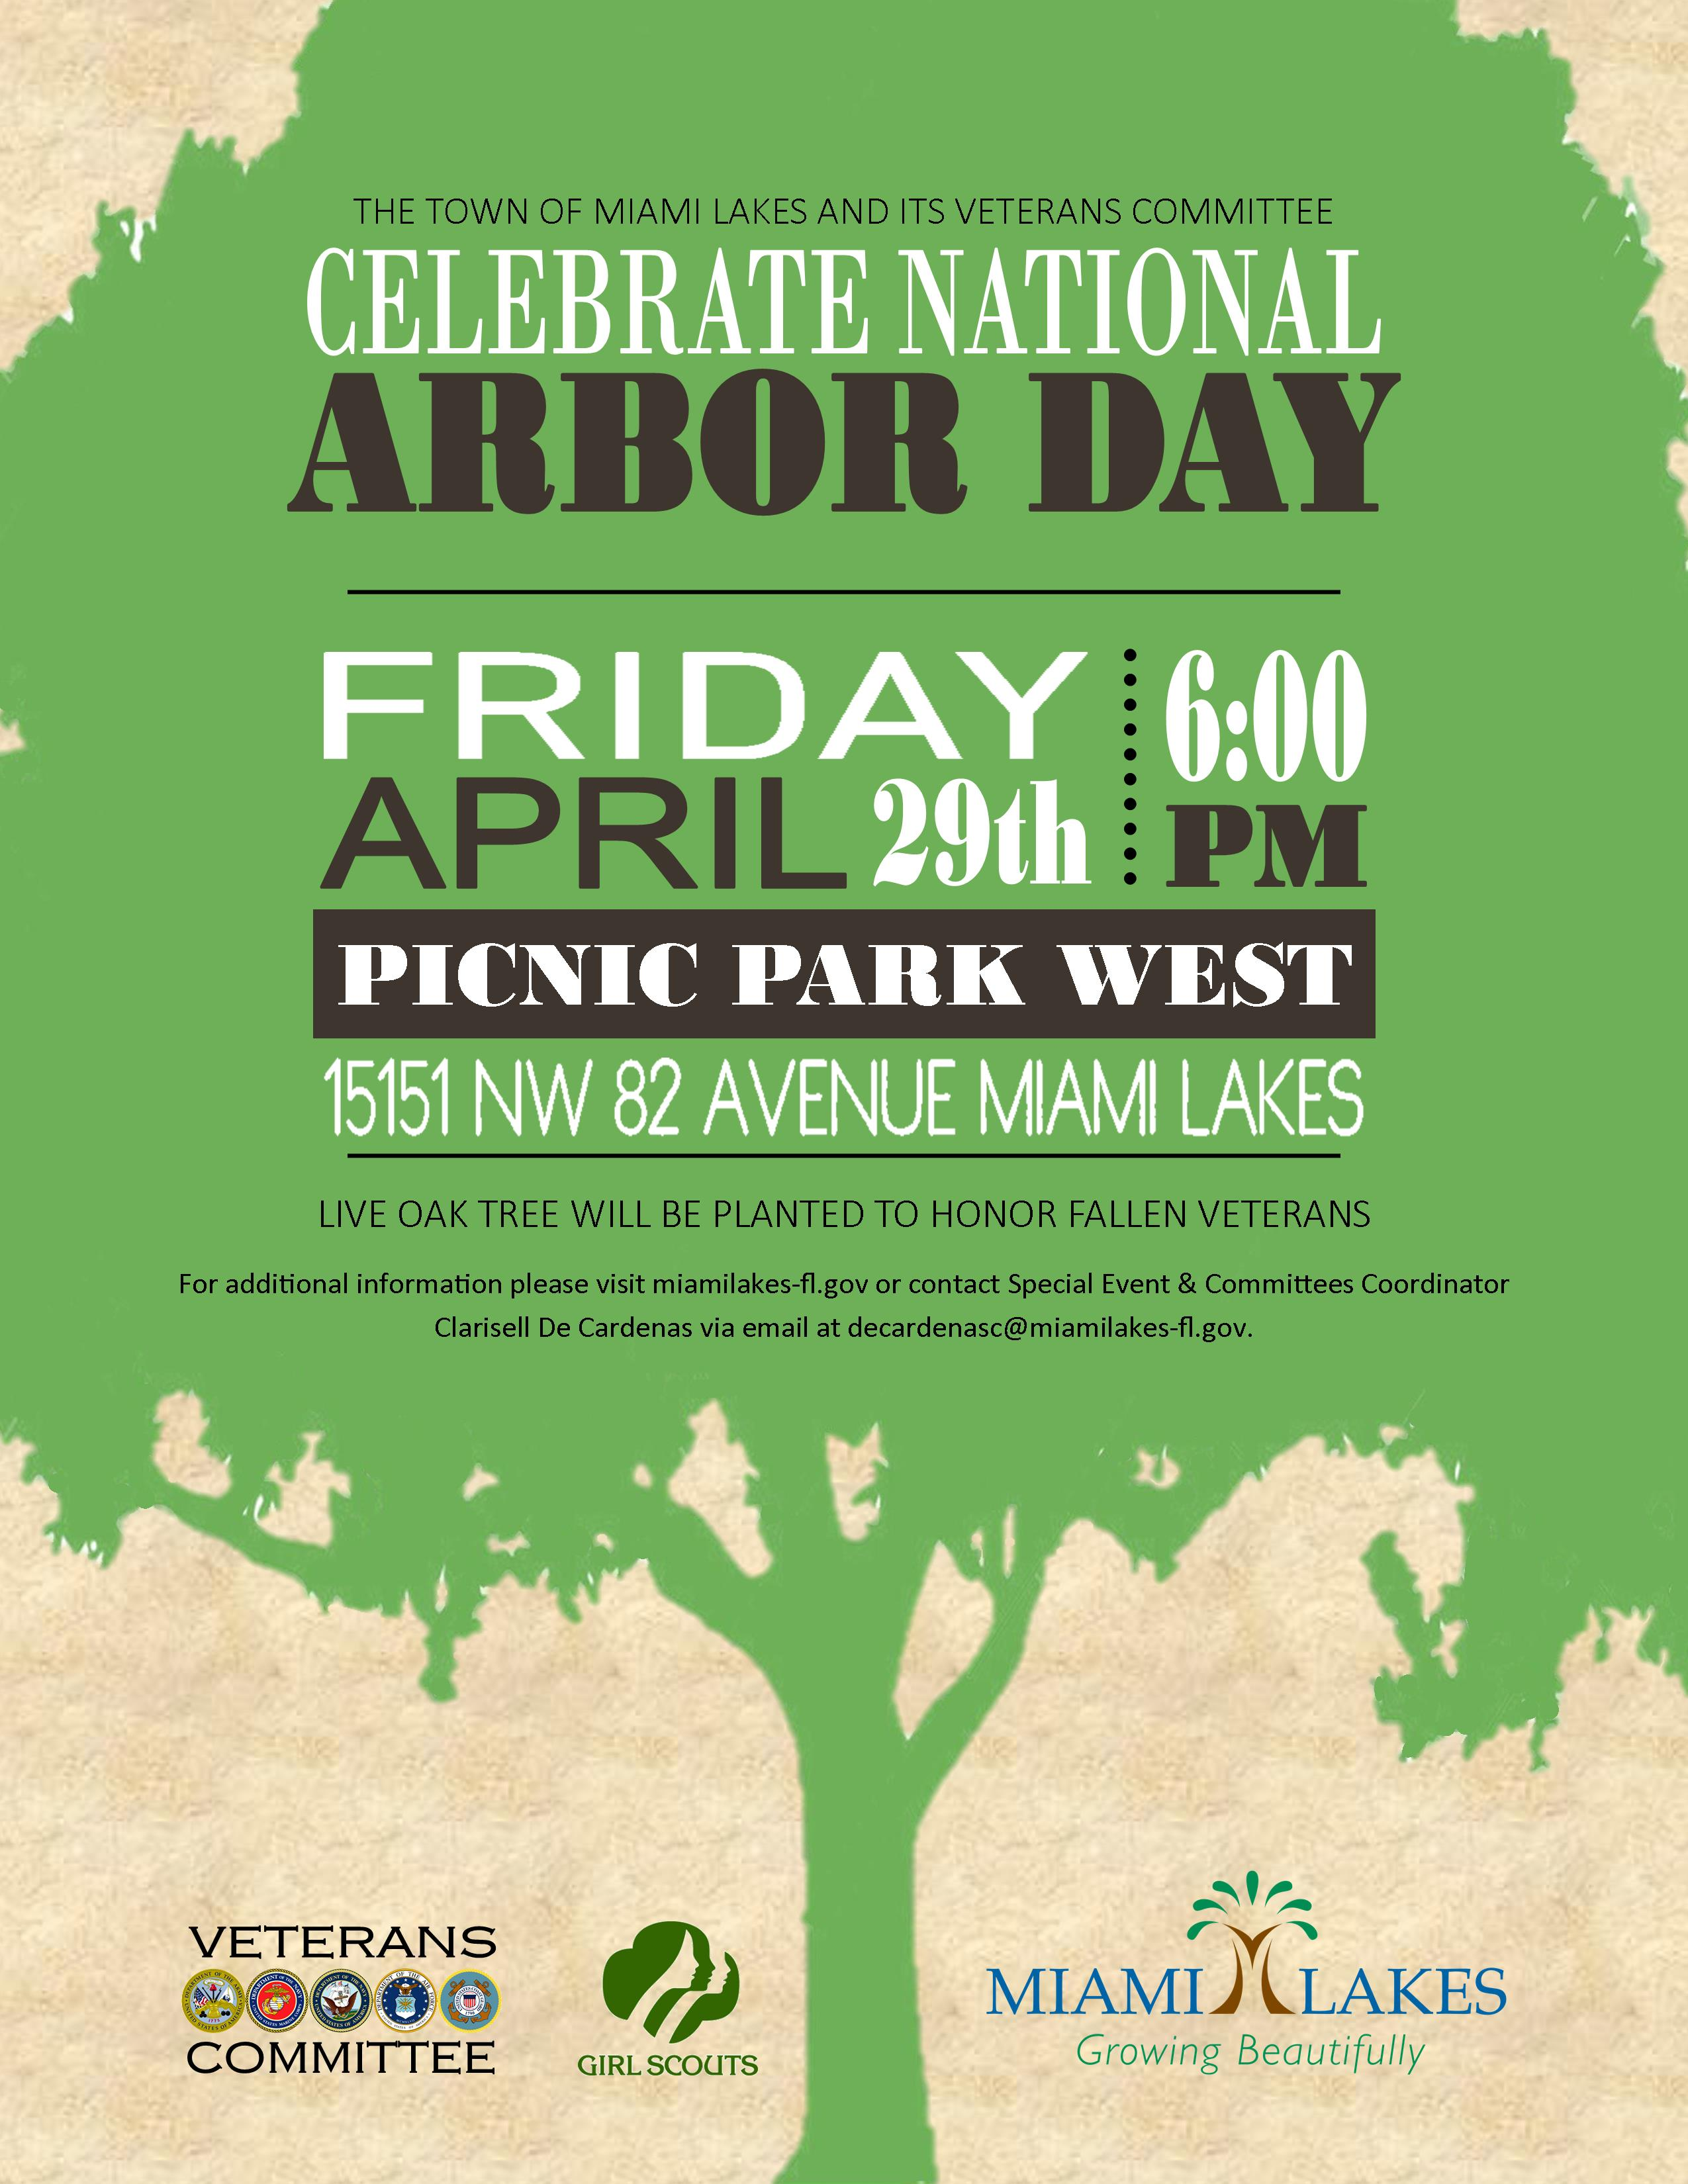 Arbor Day Tree Planting Veterans Flyer